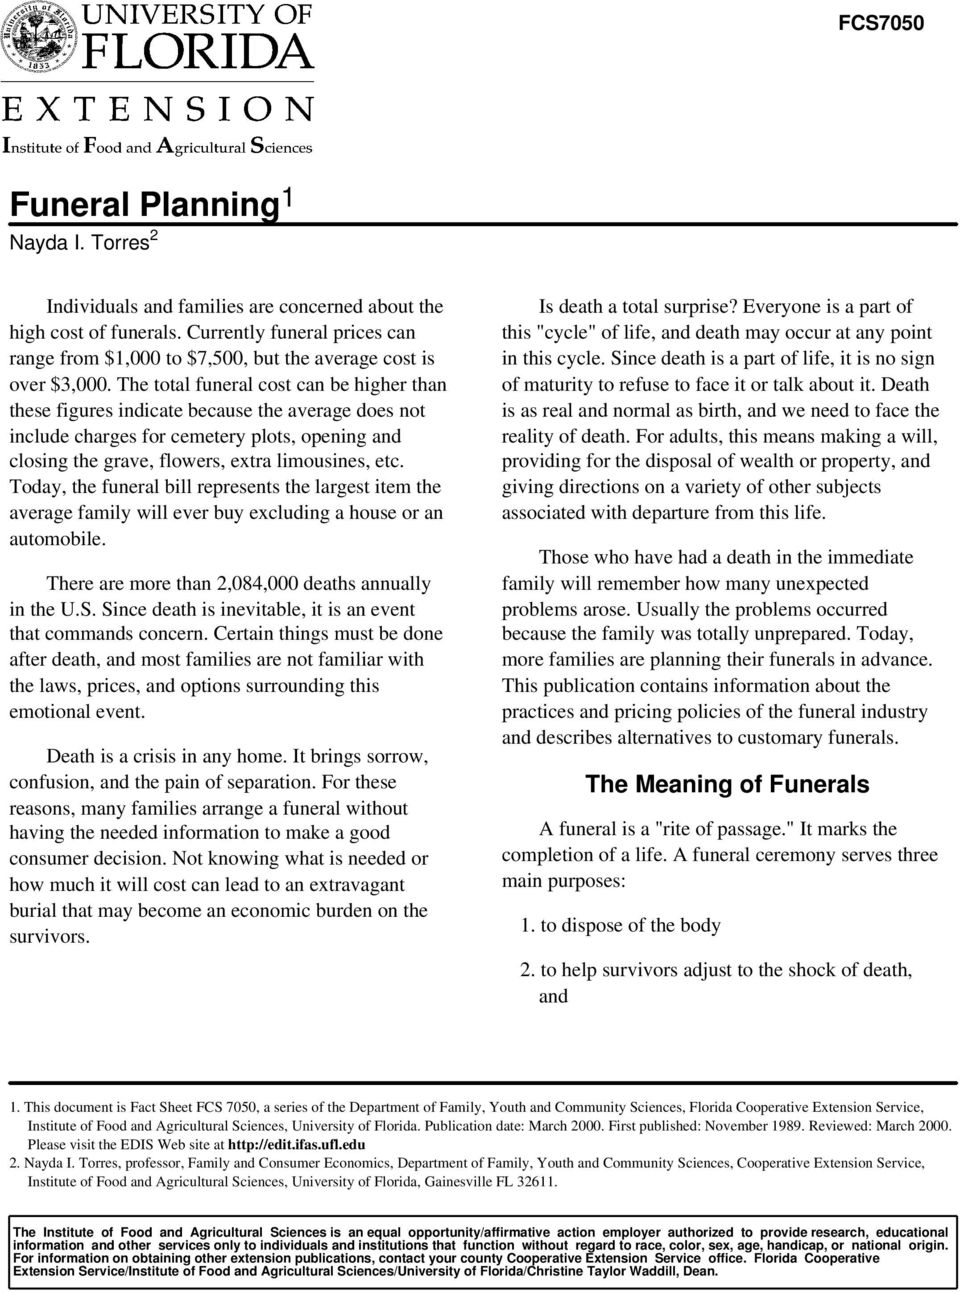 The total funeral cost can be higher than these figures indicate because the average does not include charges for cemetery plots, opening and closing the grave, flowers, extra limousines, etc.